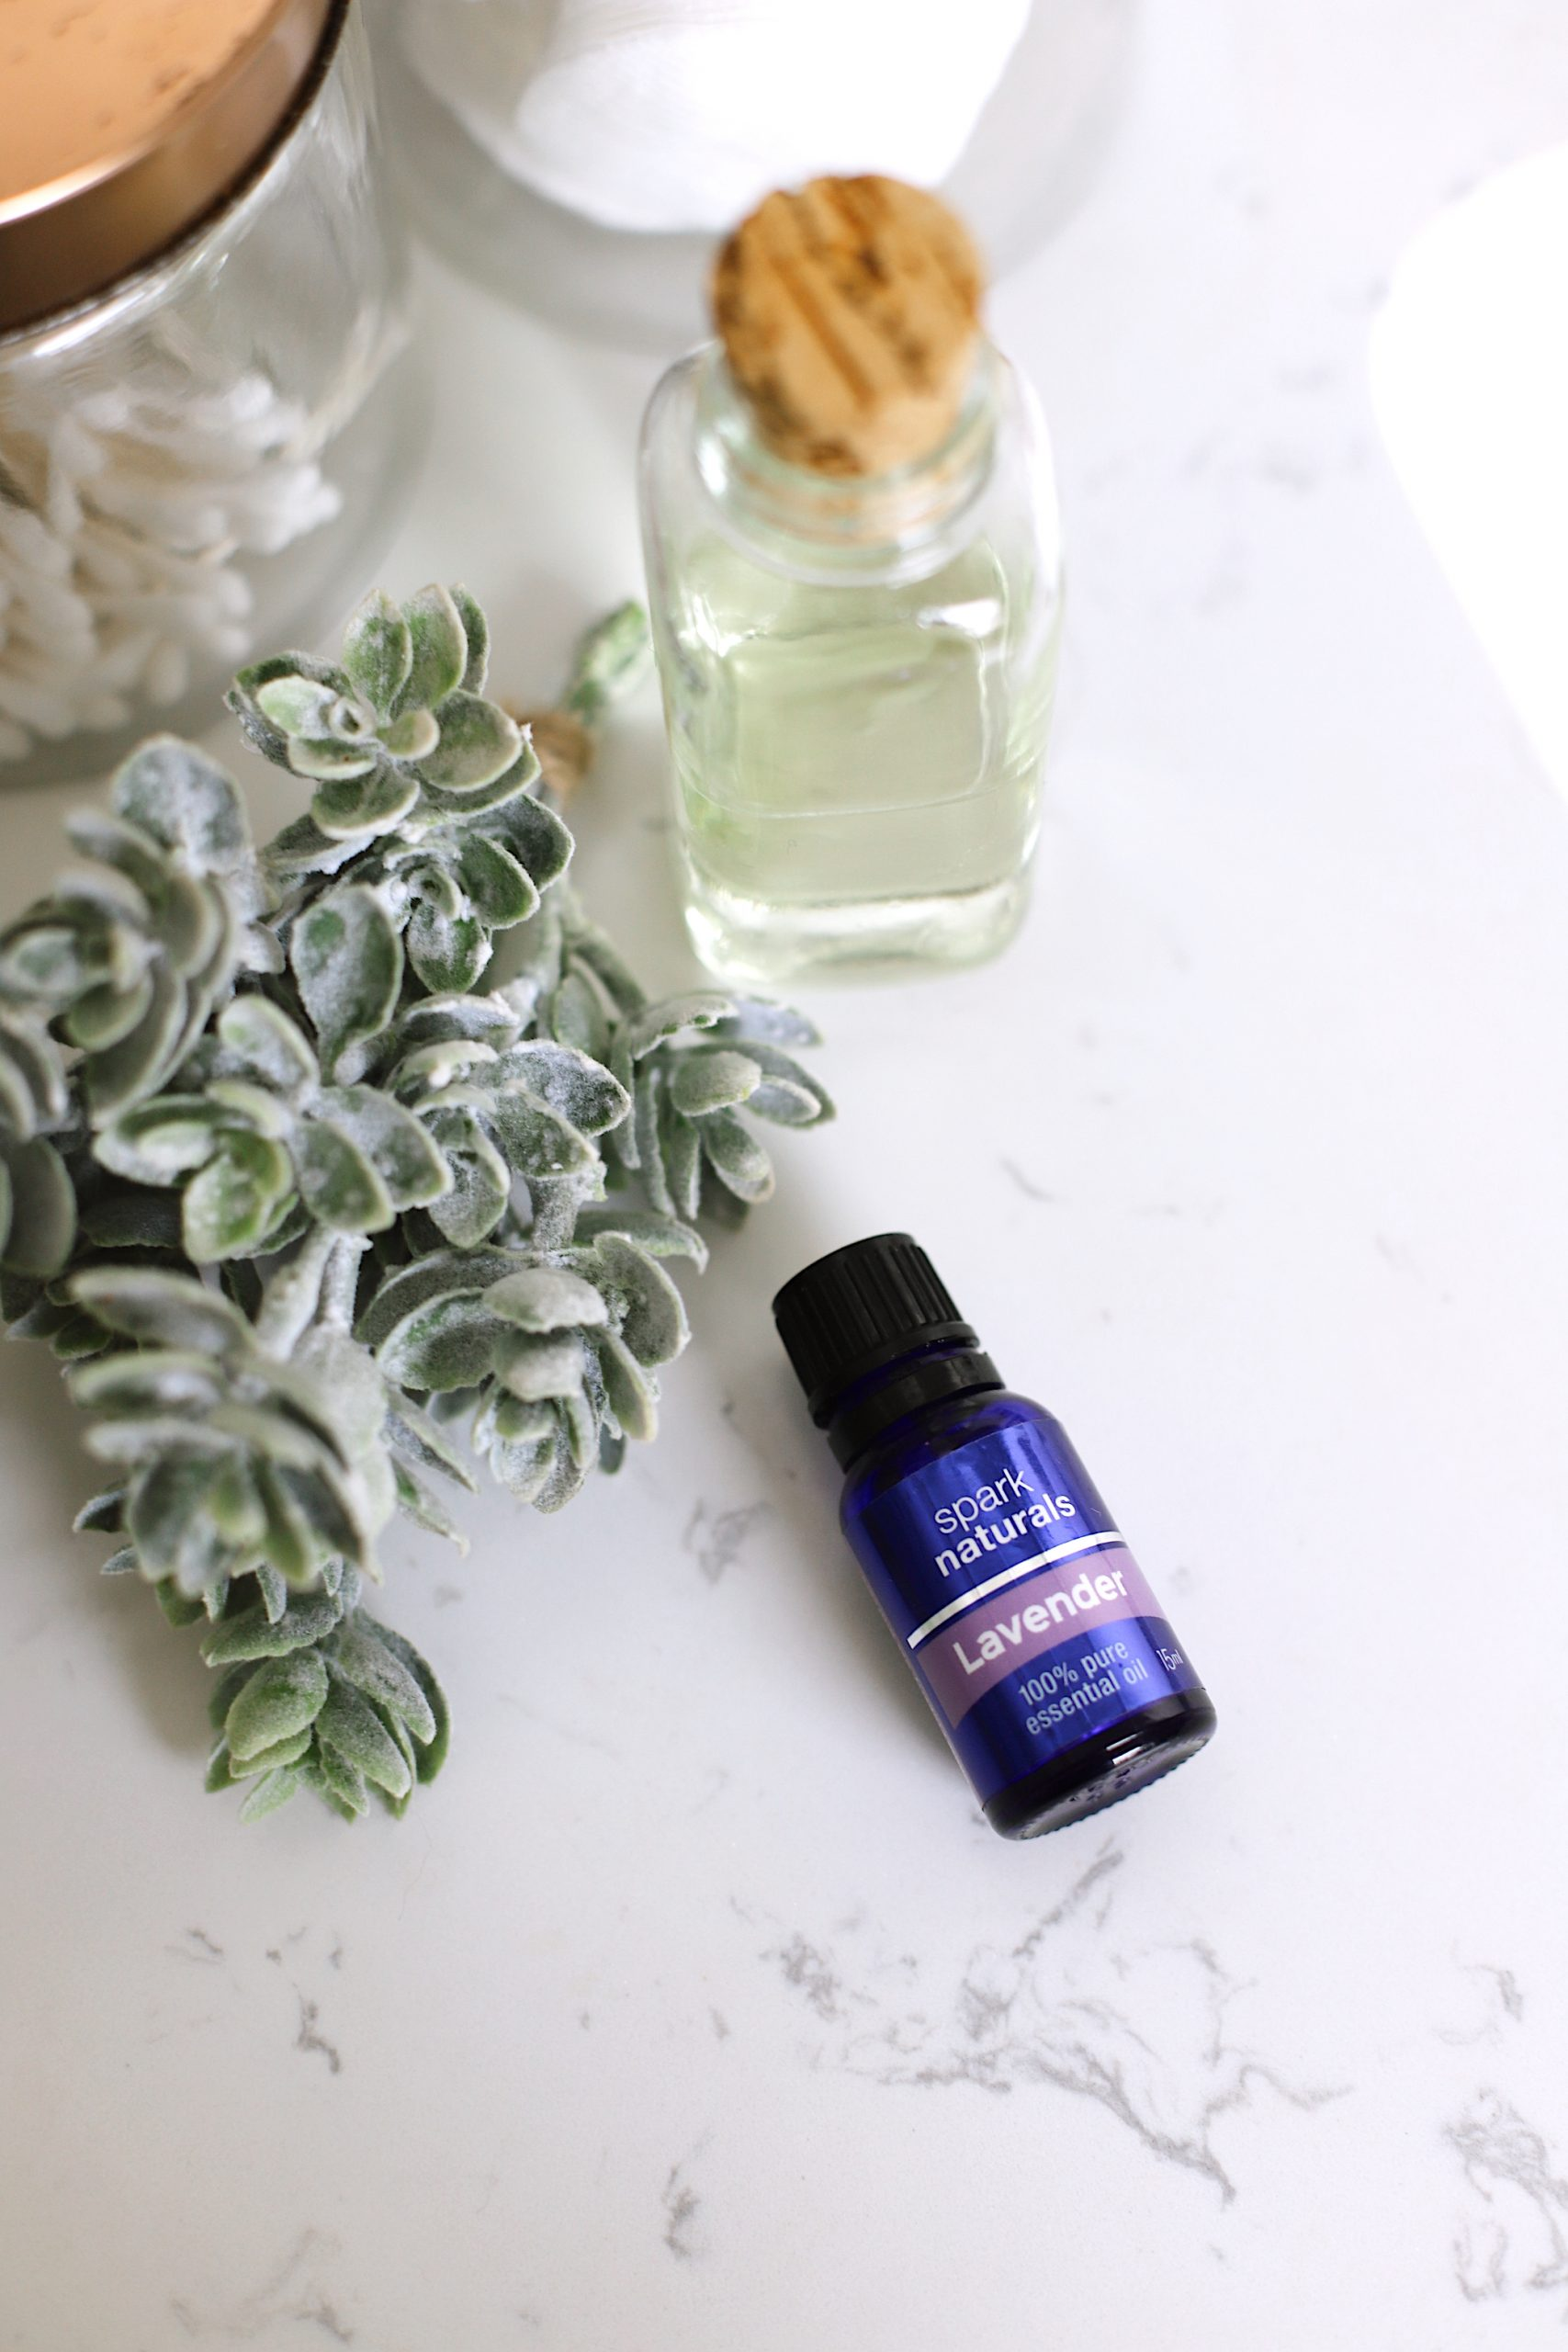 13 Spectacular Lavender Essential Oil Benefits You Need to Know About from Top US Lifestyle Blogger Tabitha Blue of Fresh Mommy Blog. | Lavender Essential Oil by popular Florida lifestyle blog, Fresh Mommy Blog: image of Spark Naturals lavender essential oil.